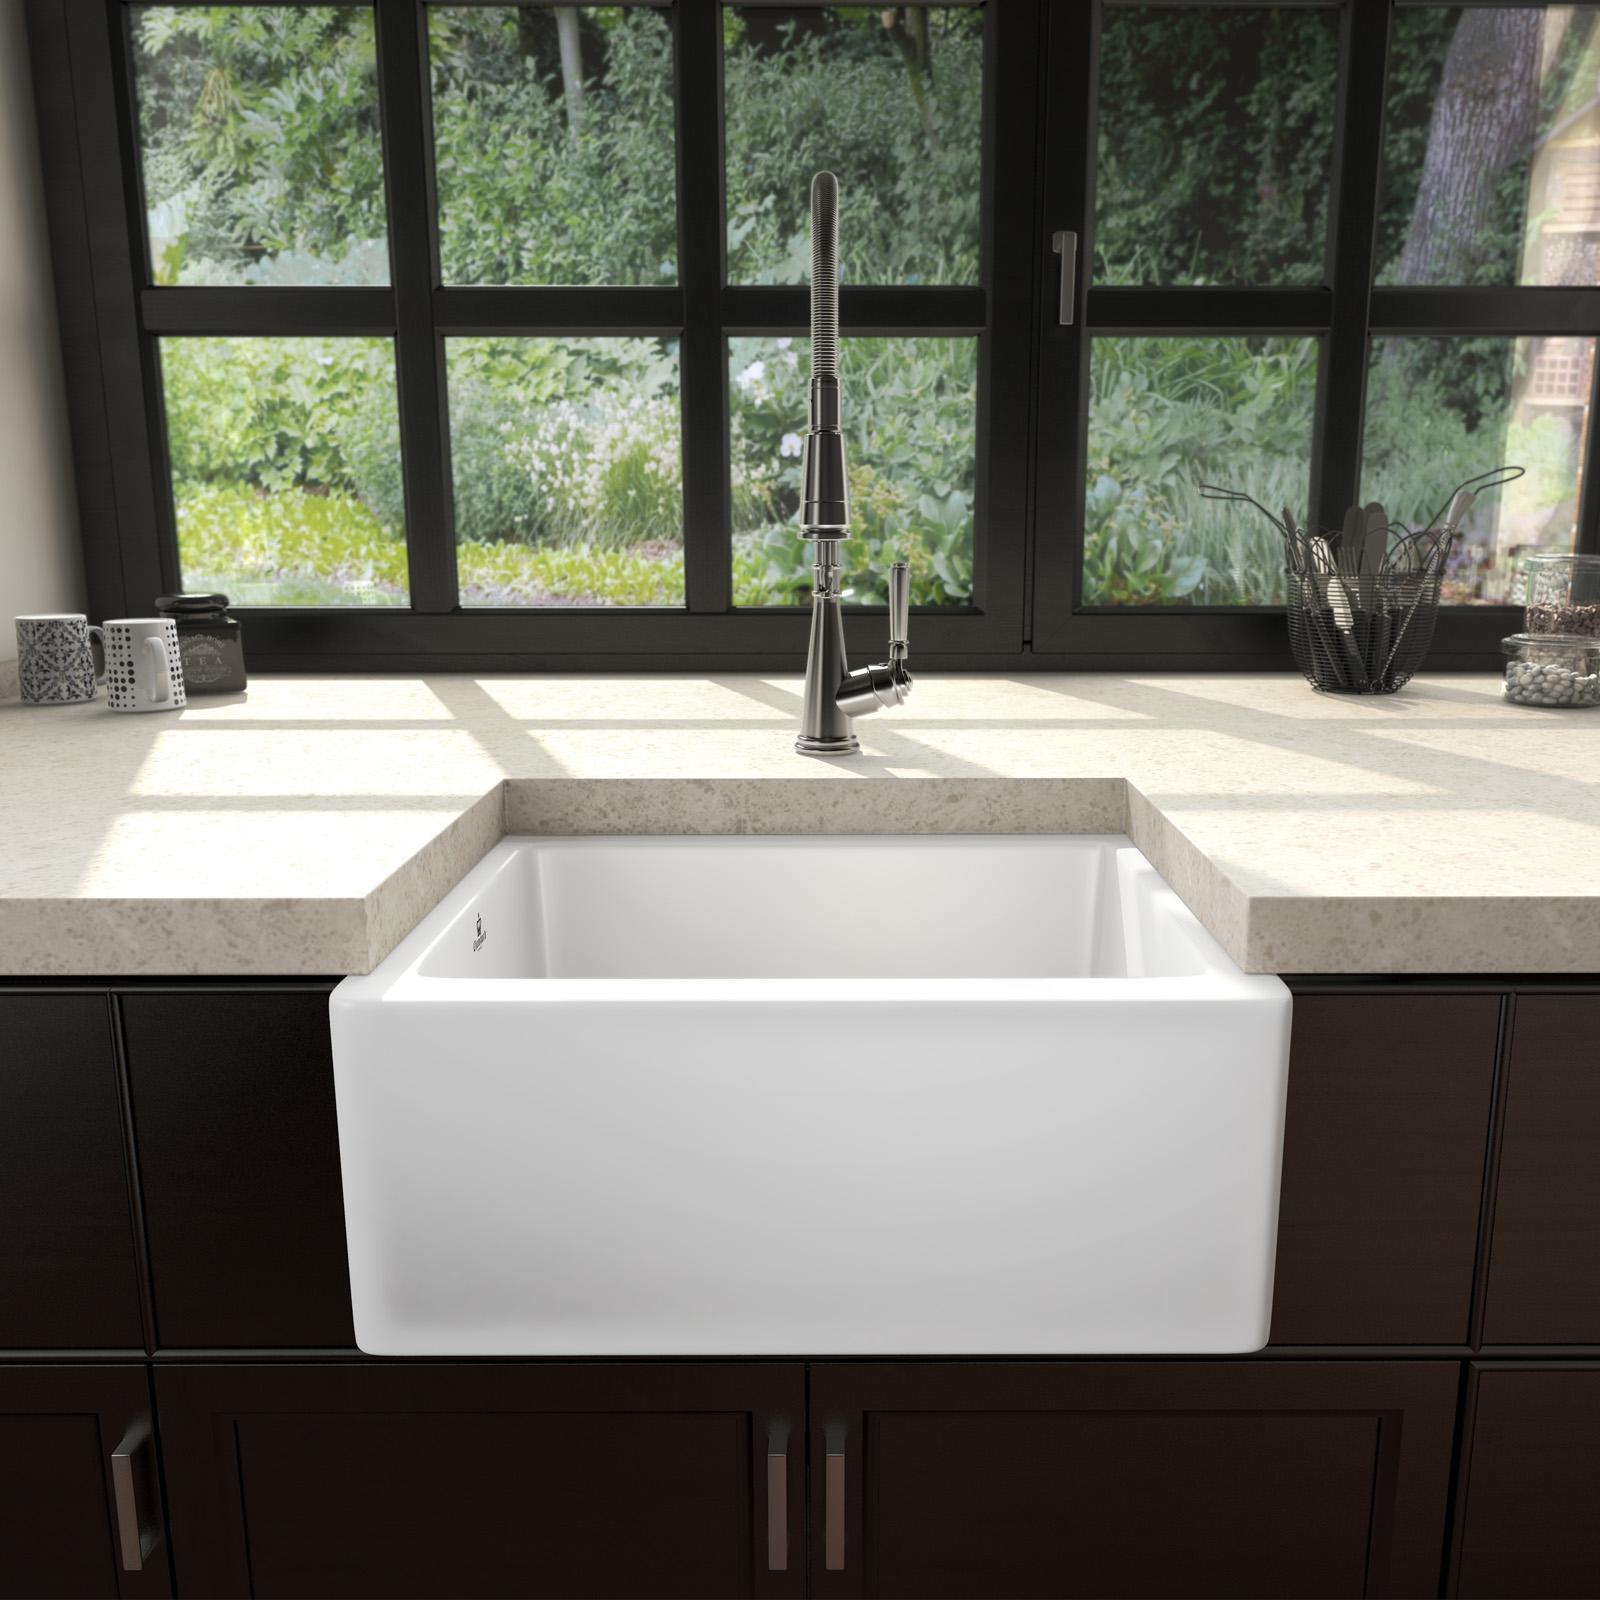 High-quality sink Philippe I - single bowl, ceramic - ambience 2